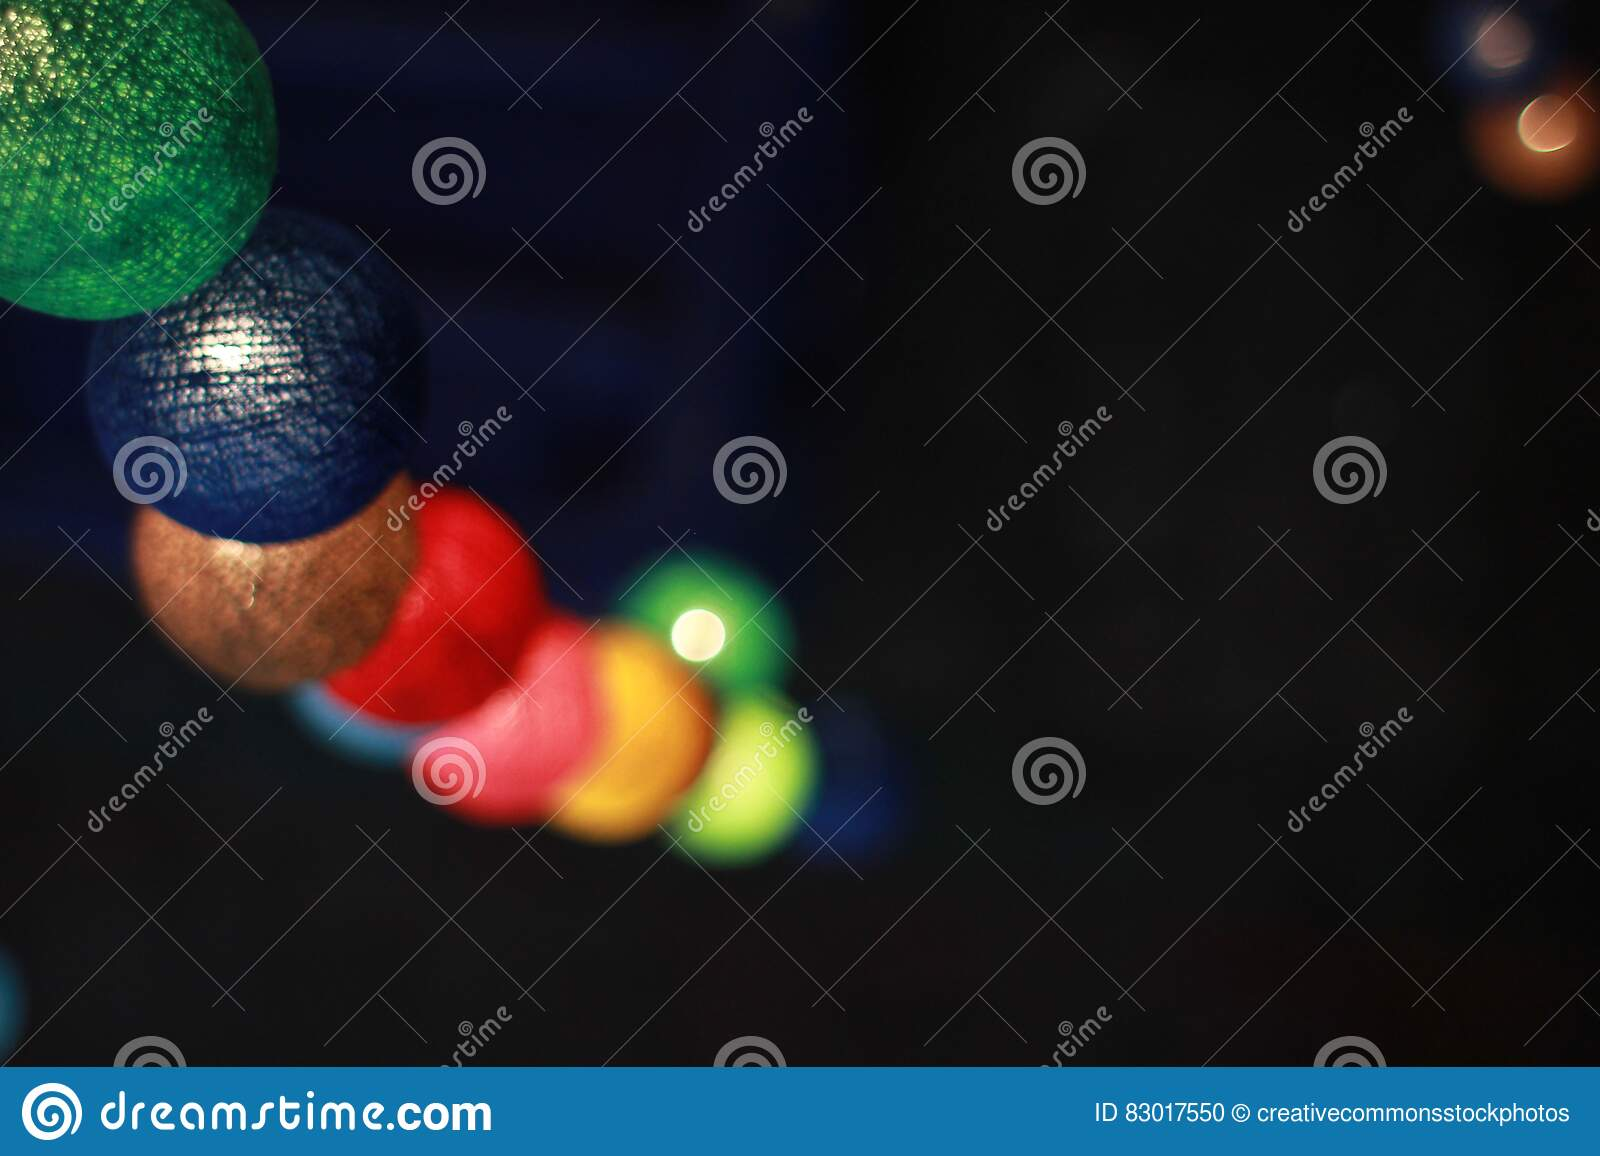 Download Green Blue And Brown Multicolored Ball Ornament Stock Photo - Image of colorful, lights: 83017550